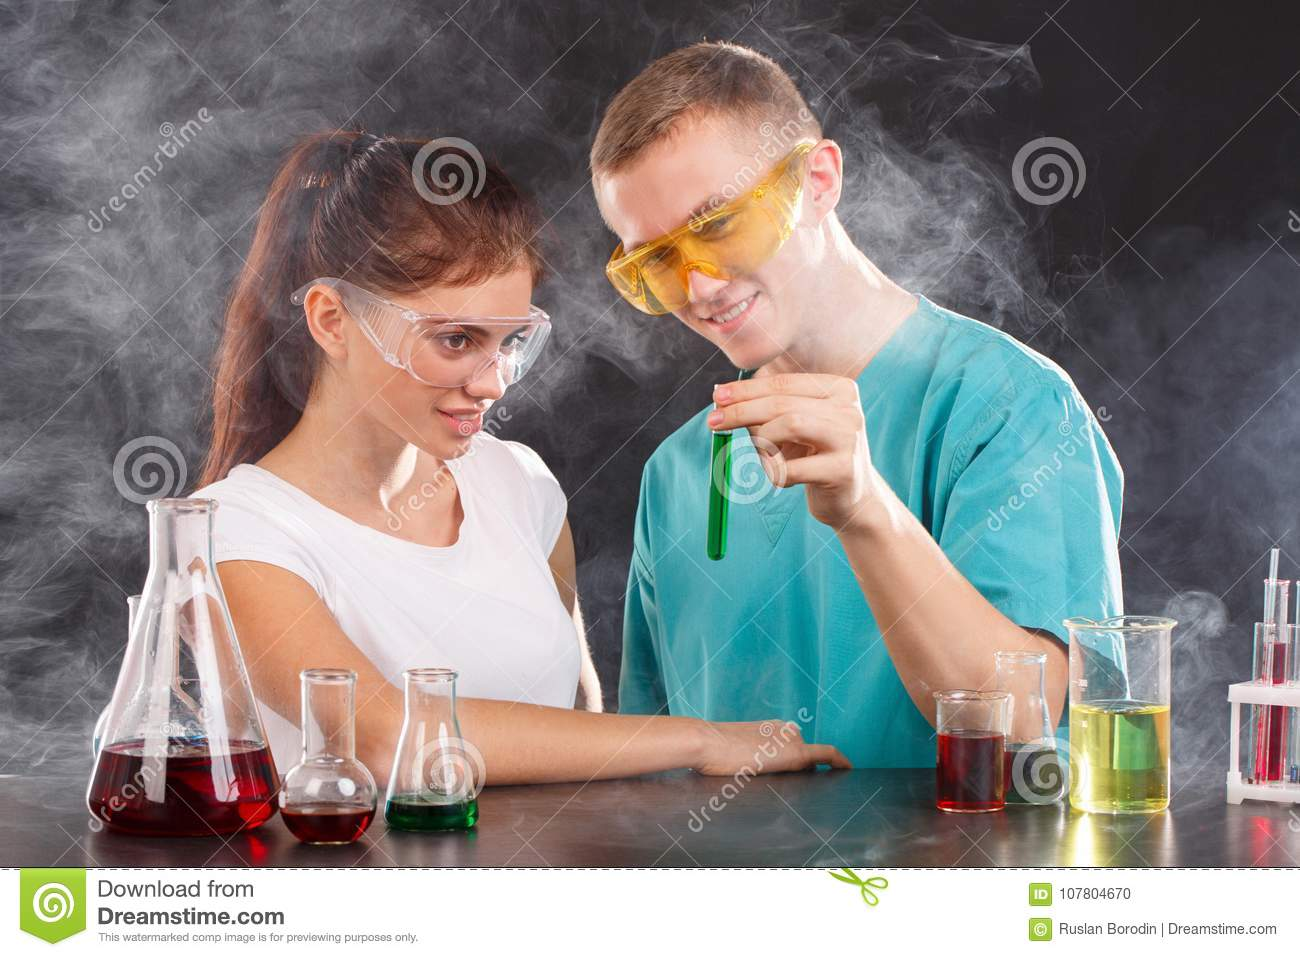 A pair of chemists examine a flask with a green liquid. The concept of science.